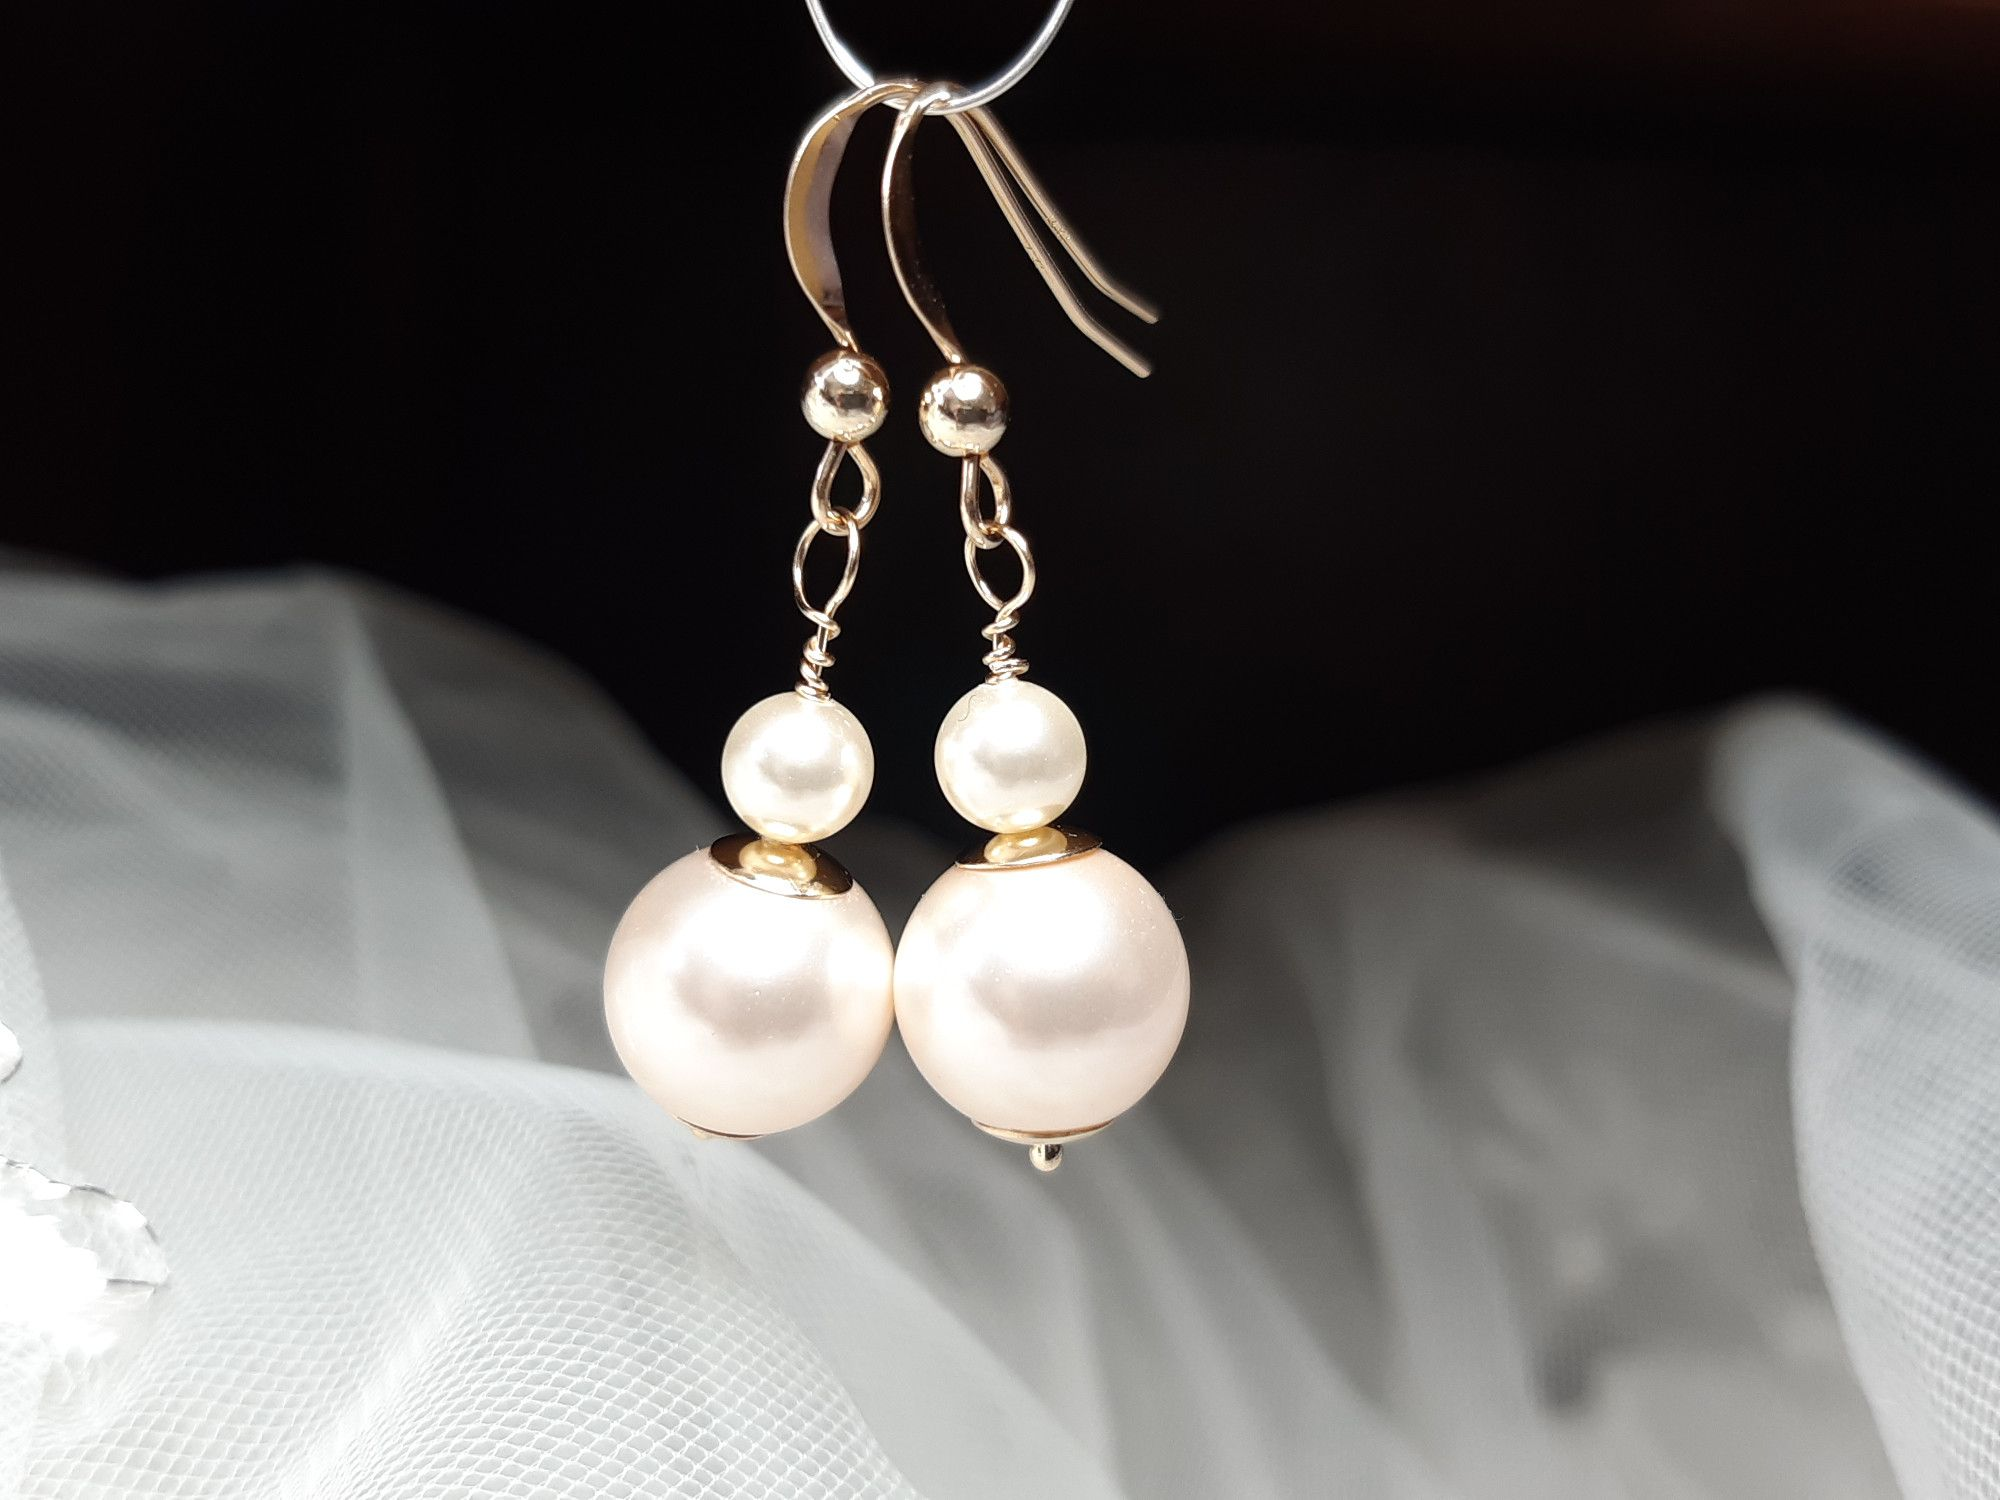 Occasion-bridal-wedding-earrings with 14K gold & pearls-2.jpg